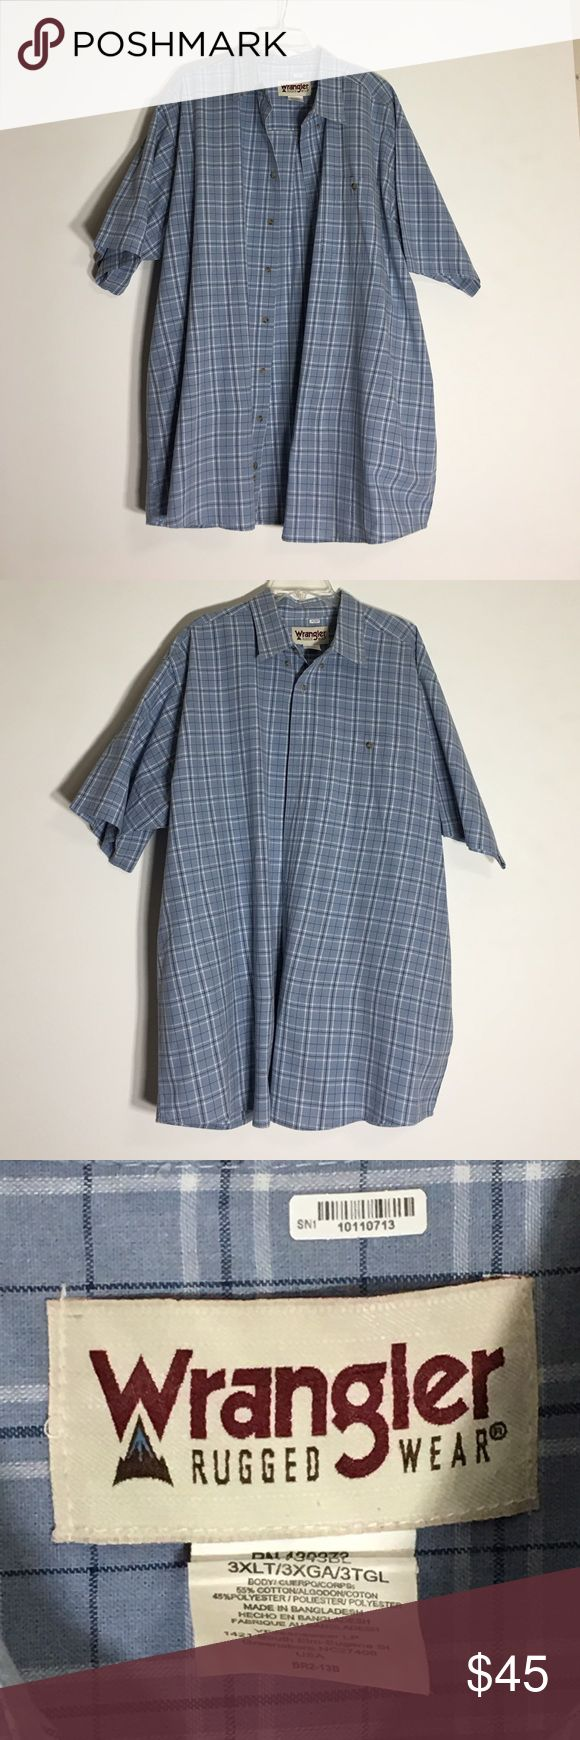 Wrangler Rugged Wear Plaid Shirt - 3XLT Gently Used Condition. Please ask questions before purchasing.  See pictures for more information and description details.  Thank you for stopping by my closet.  Sparkles ✨ and Happy Poshing!  📌Fair Offers Considered Wrangler Shirts Casual Button Down Shirts